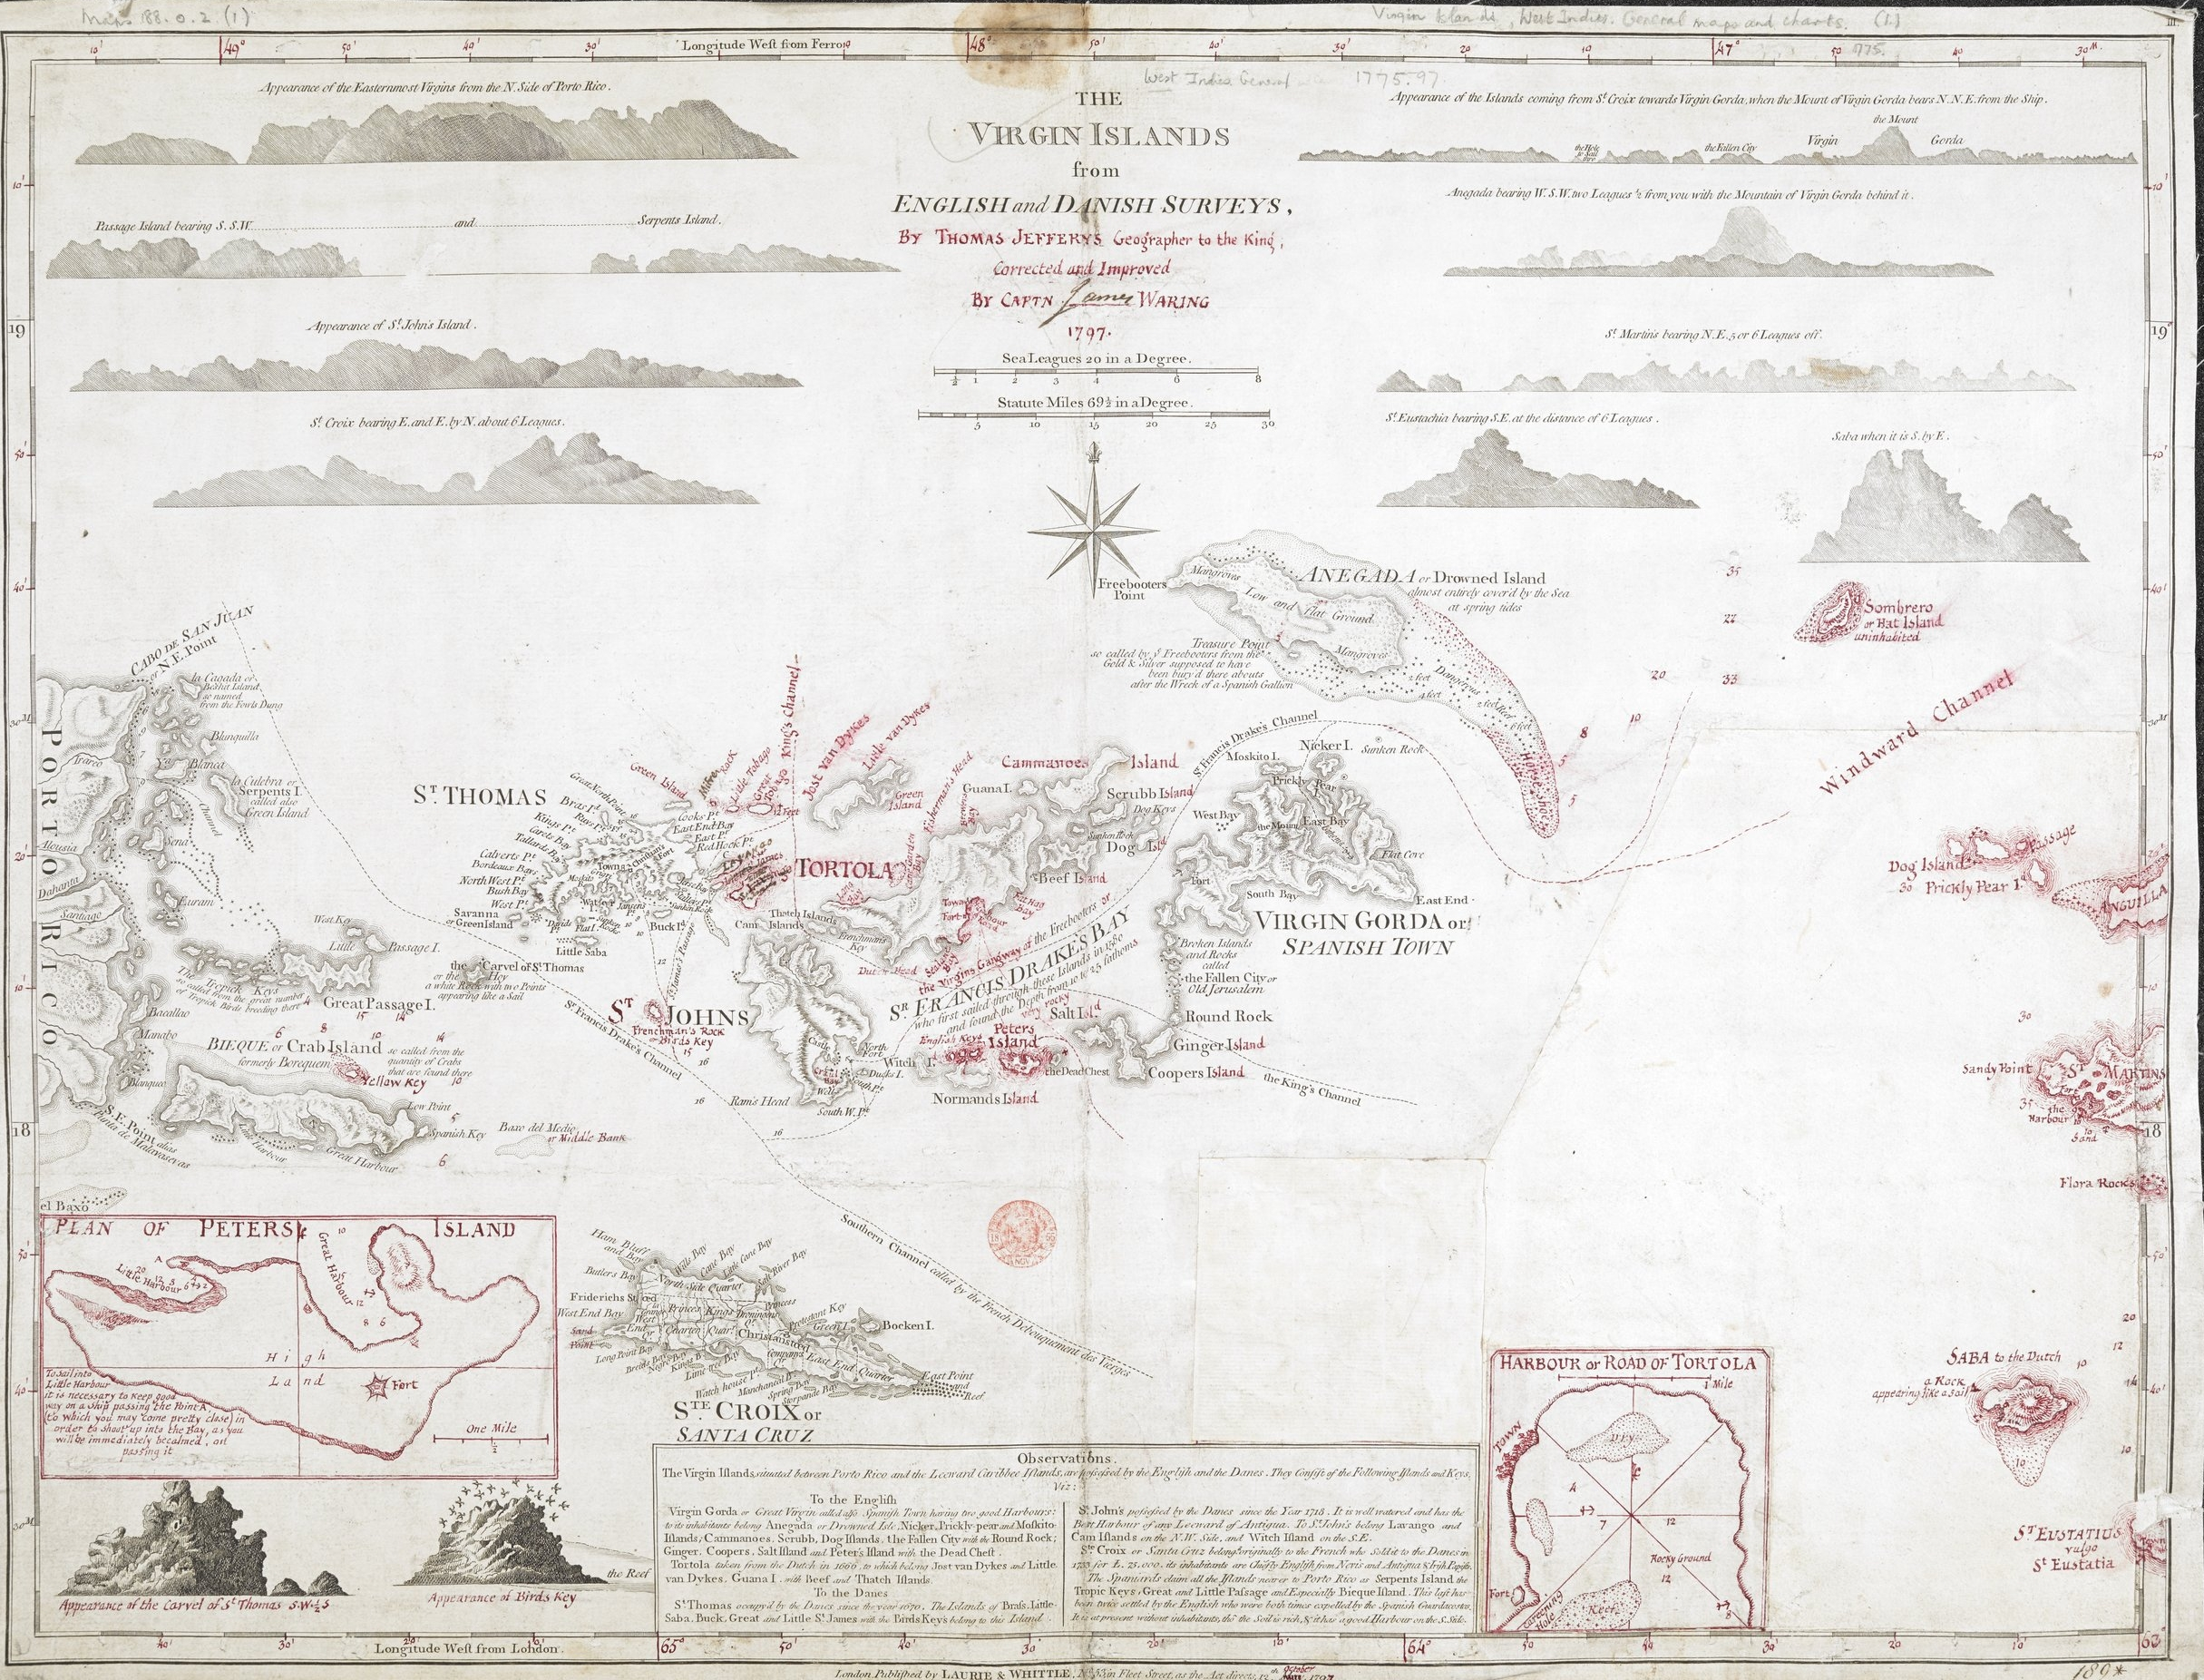 Thomas Jeffreys' (1797) map of the Virgin Islands details a Dutch slave colony west of Puerto Rico. Practical information to aid navigation is interspersed with observations on wildlife, place name origins and historical details.